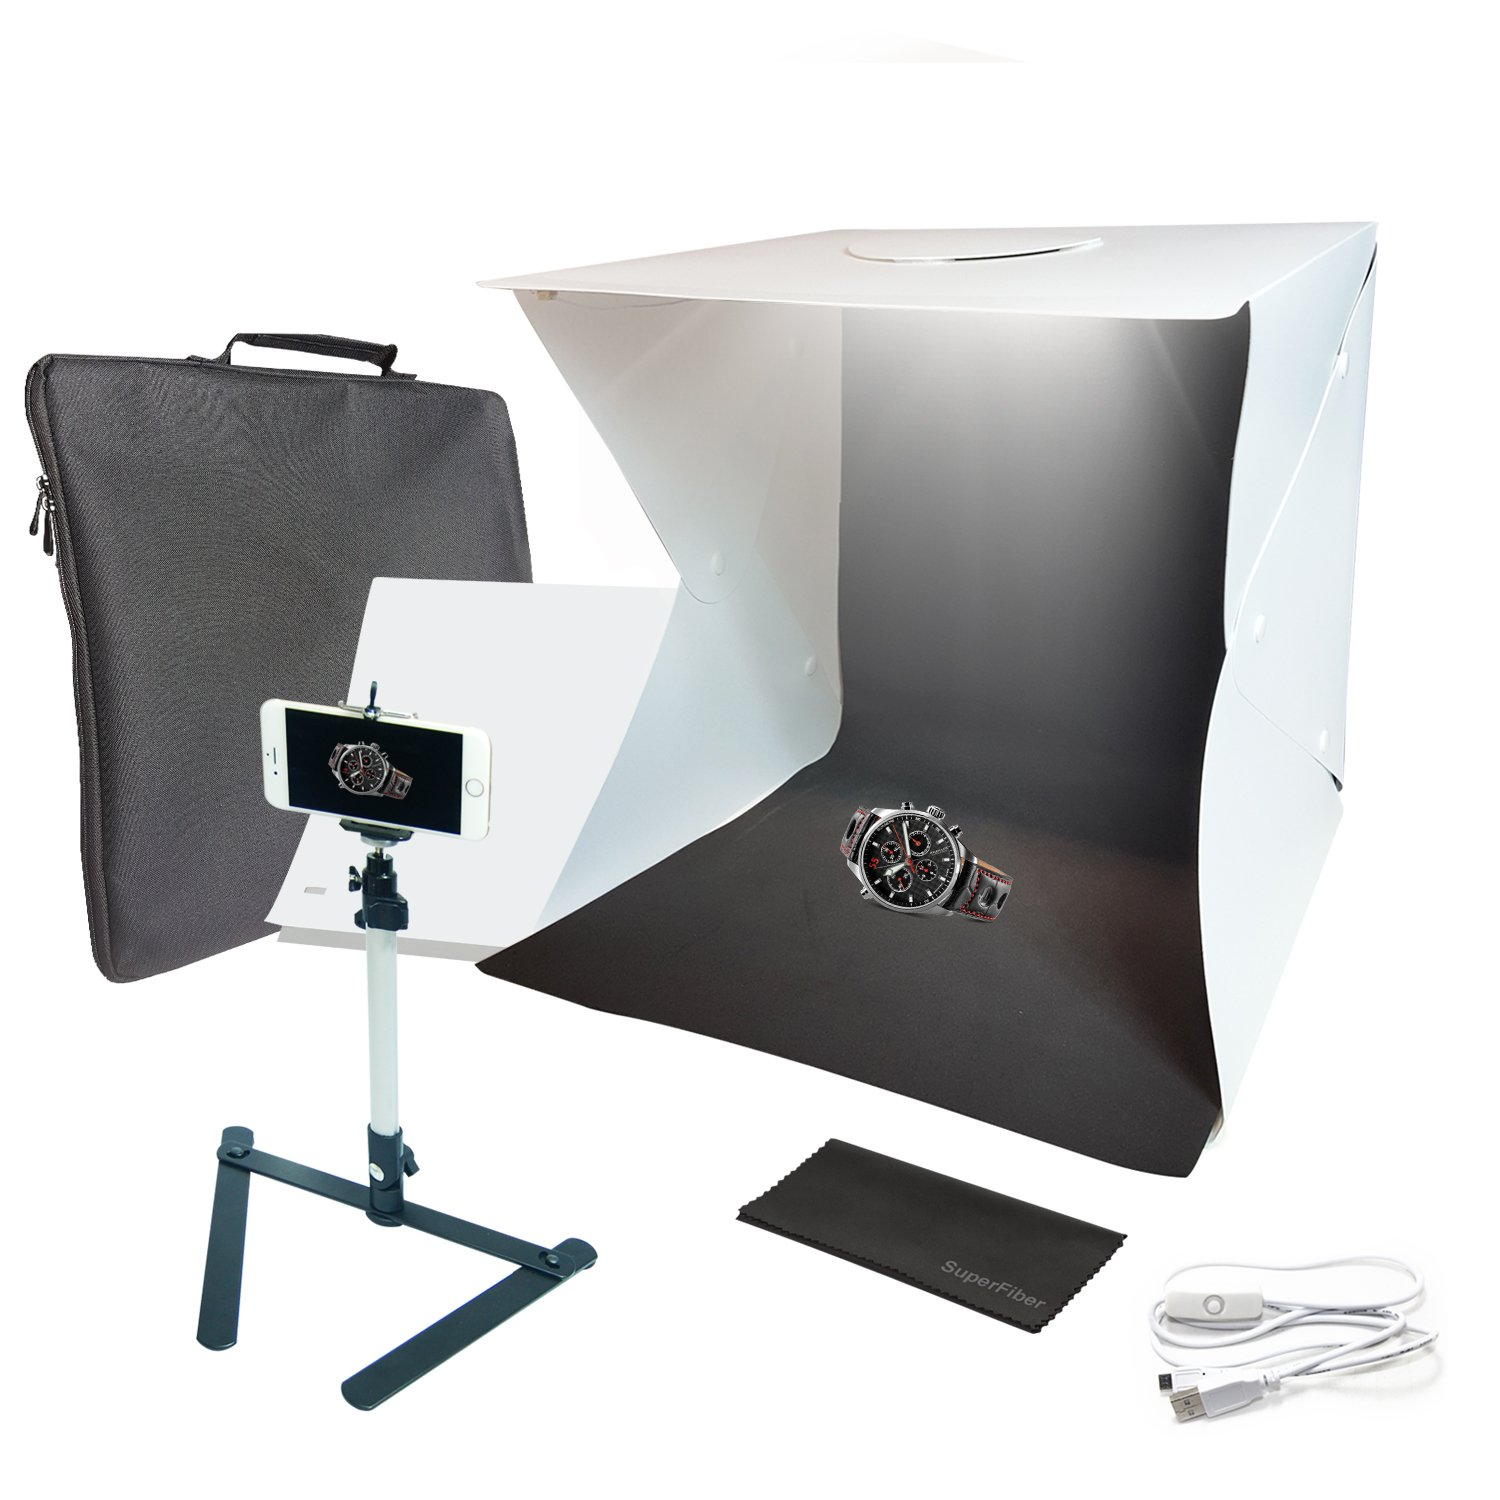 16-inch Cubic (40 x 40 x 40 cm) 70 LED Foldable & Portable Photo Studio Lighting Box Tent Kit with White/Black Background, USB Power Cable, Table Top Mini Stand, Cellphone Clip Holder, AGG2336